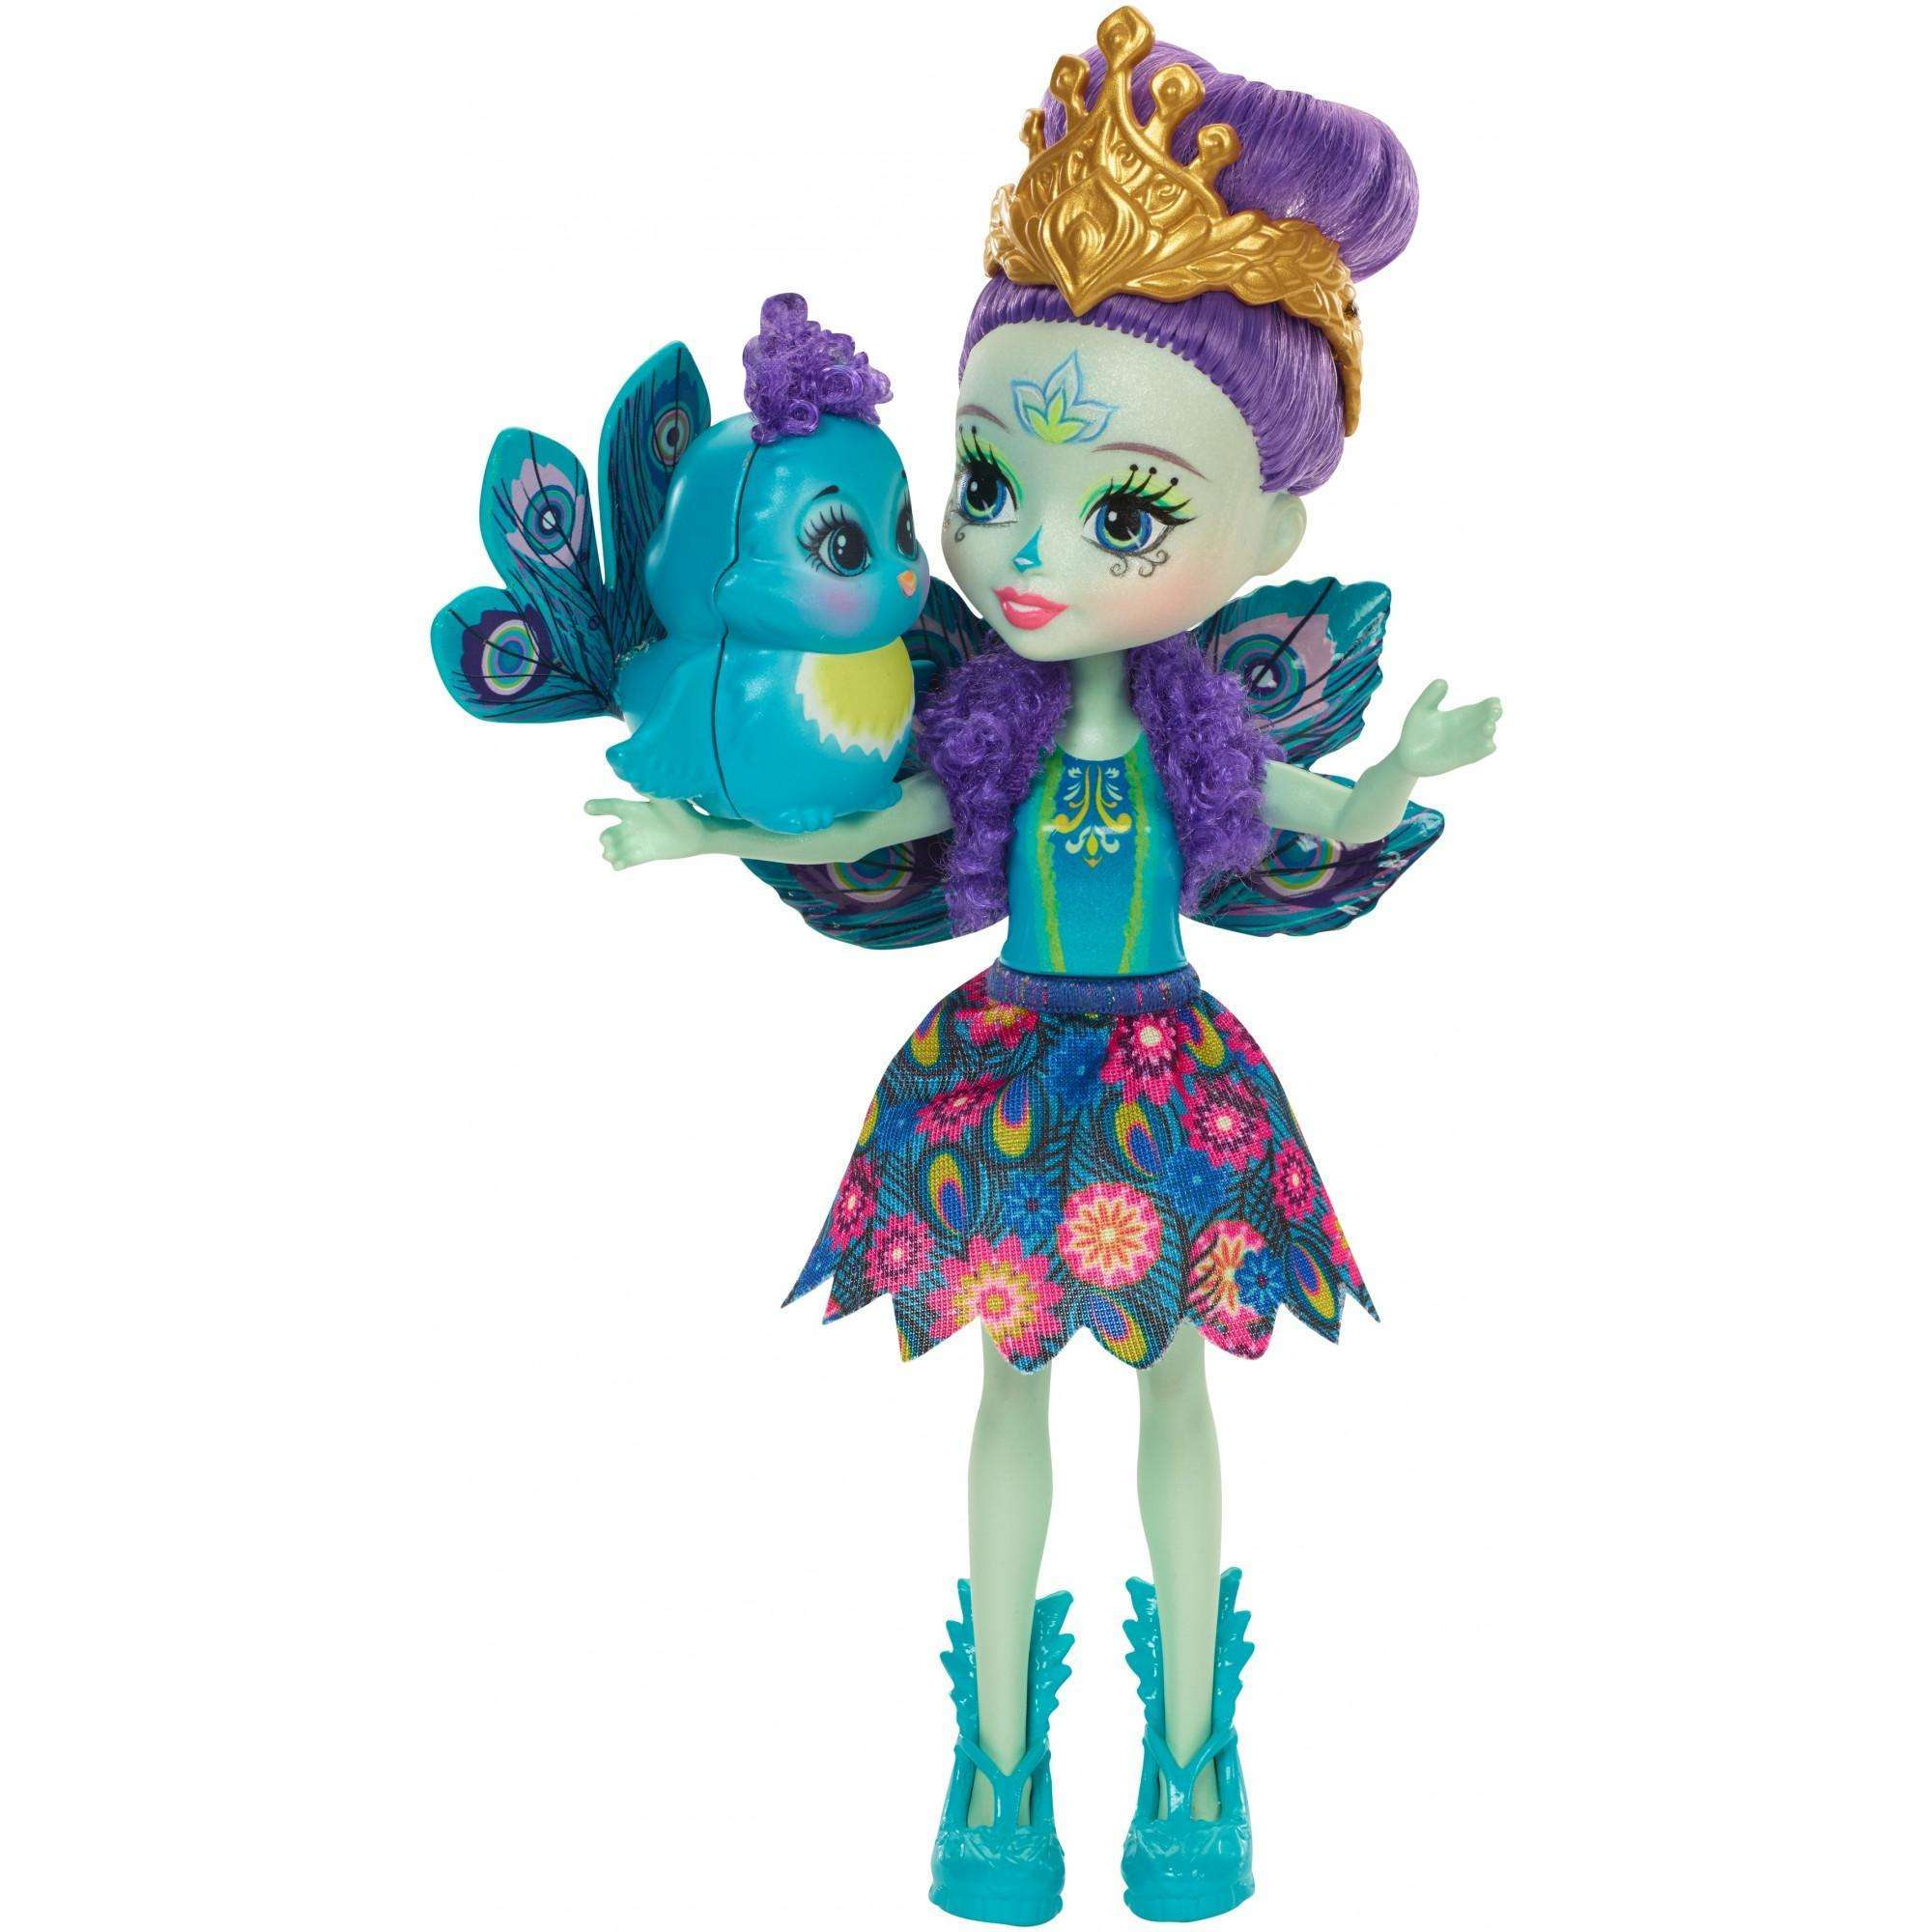 Enchantimals Patter Peacock Doll by Mattel